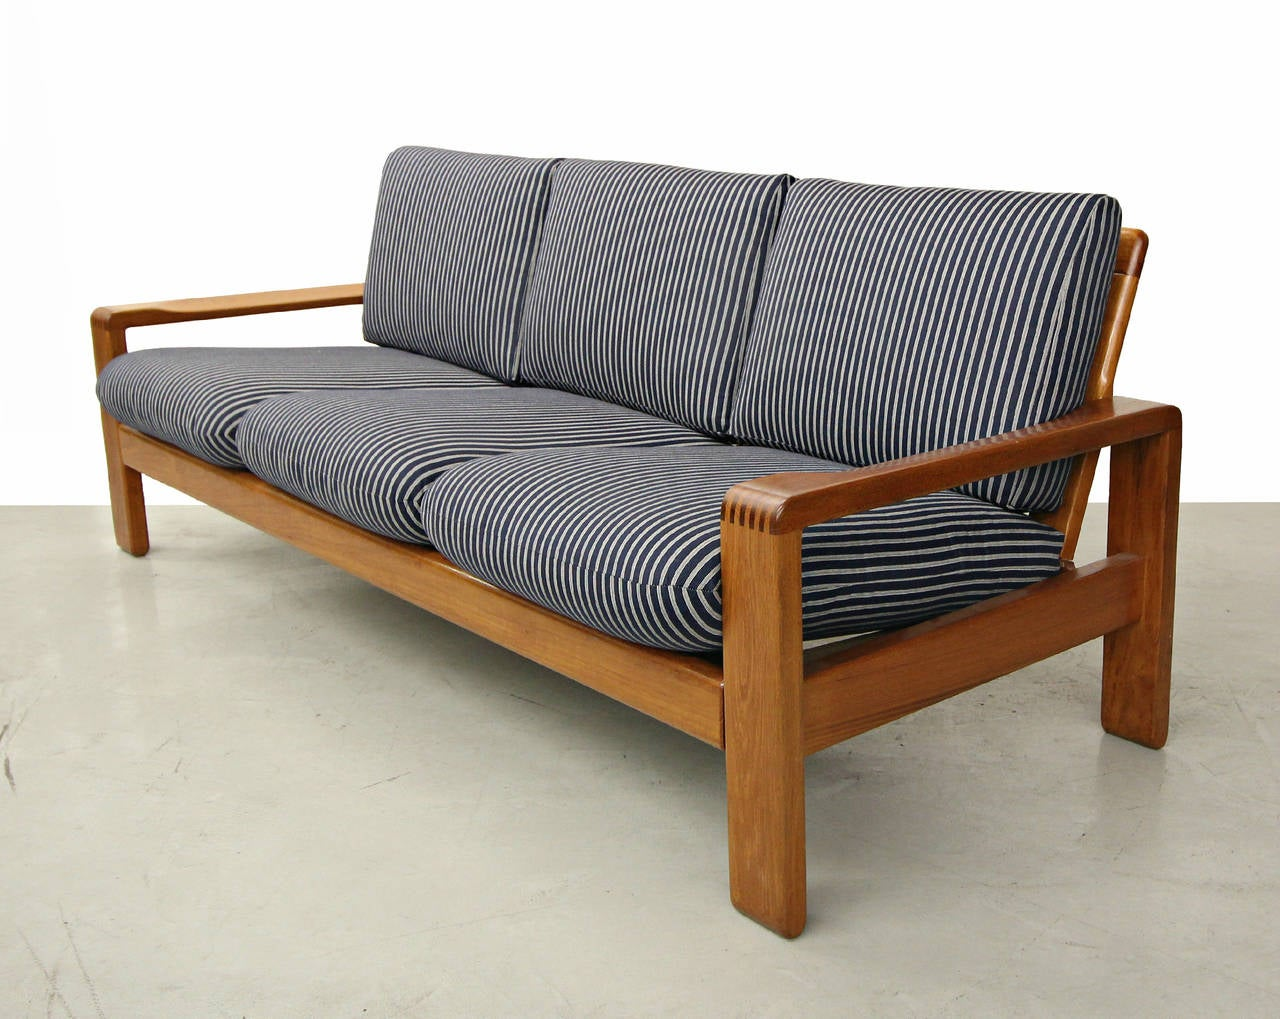 solid danish teak slat back sofa by hw klein for bramin mobler at 1stdibs. Black Bedroom Furniture Sets. Home Design Ideas